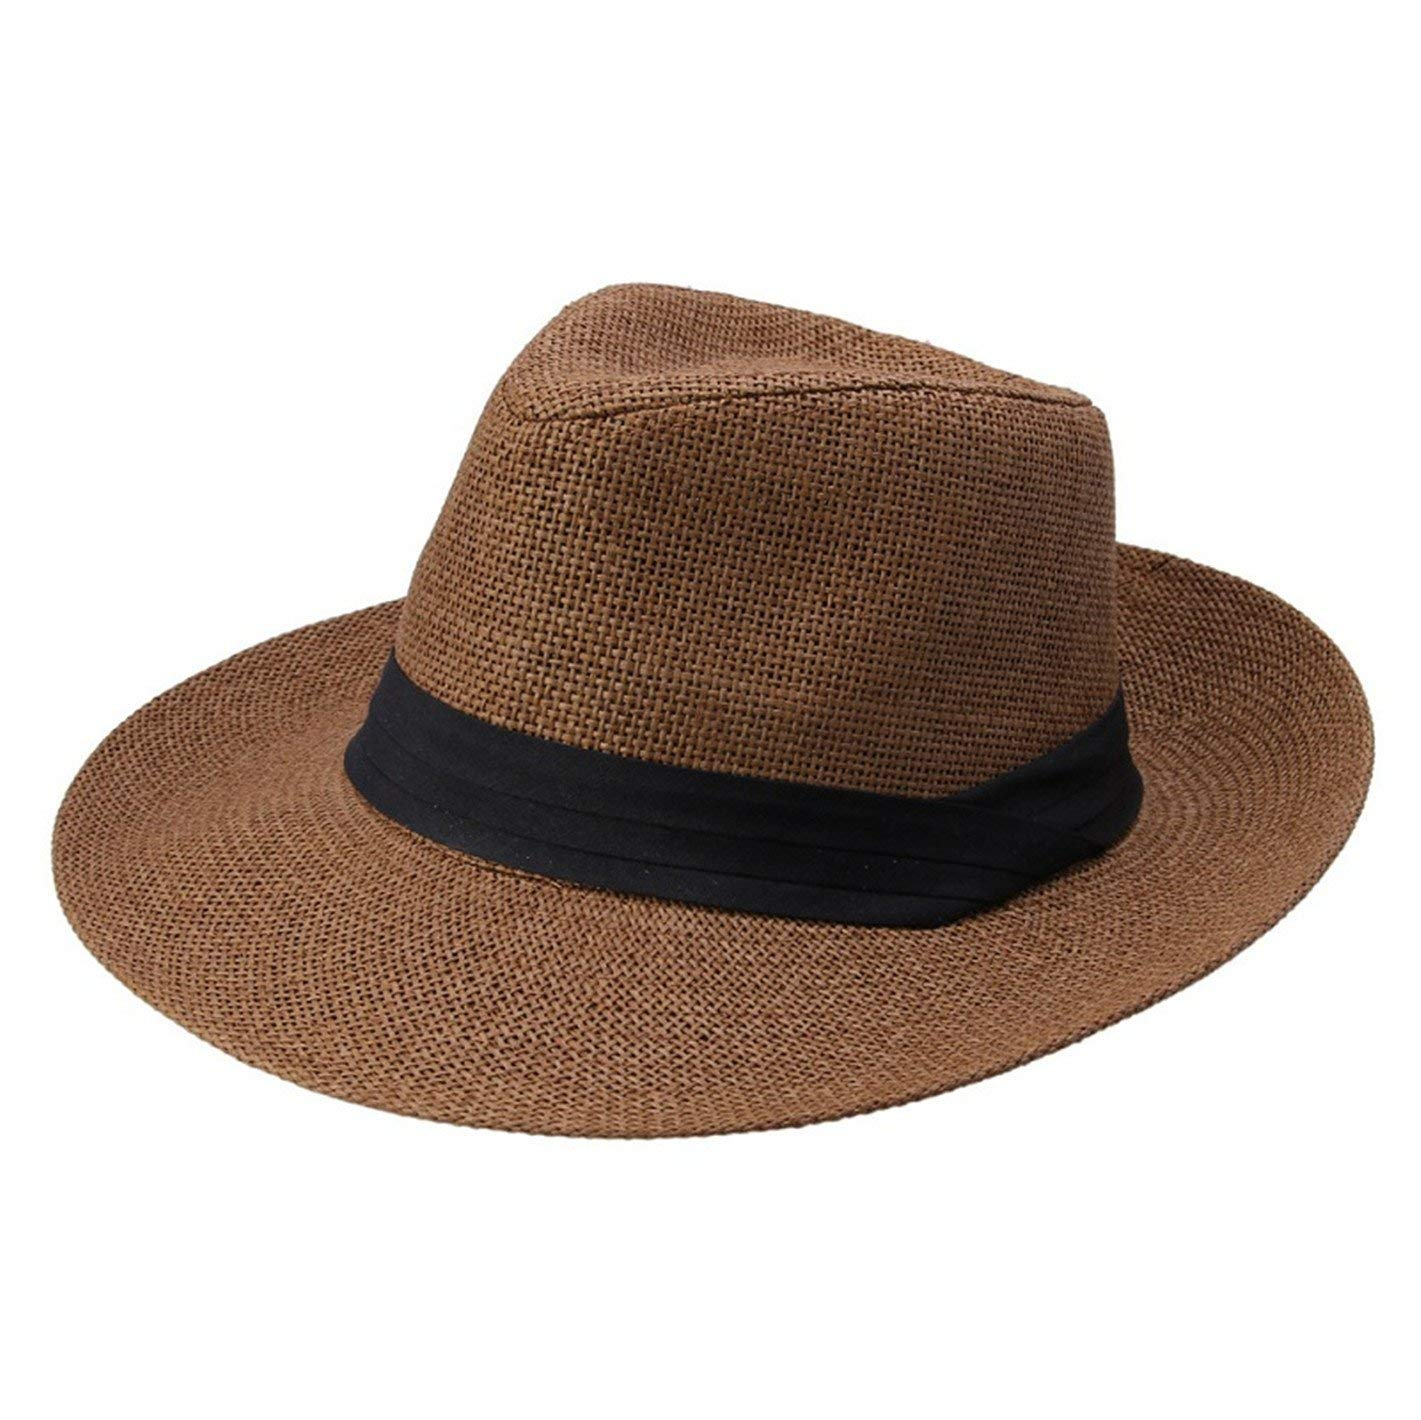 c7aac18a8dd Get Quotations · WKING Summer Unisex Straw Jazz Sunhat With Ribbon Trim Wide  Brim Cap Beach Solid Fedora Hats